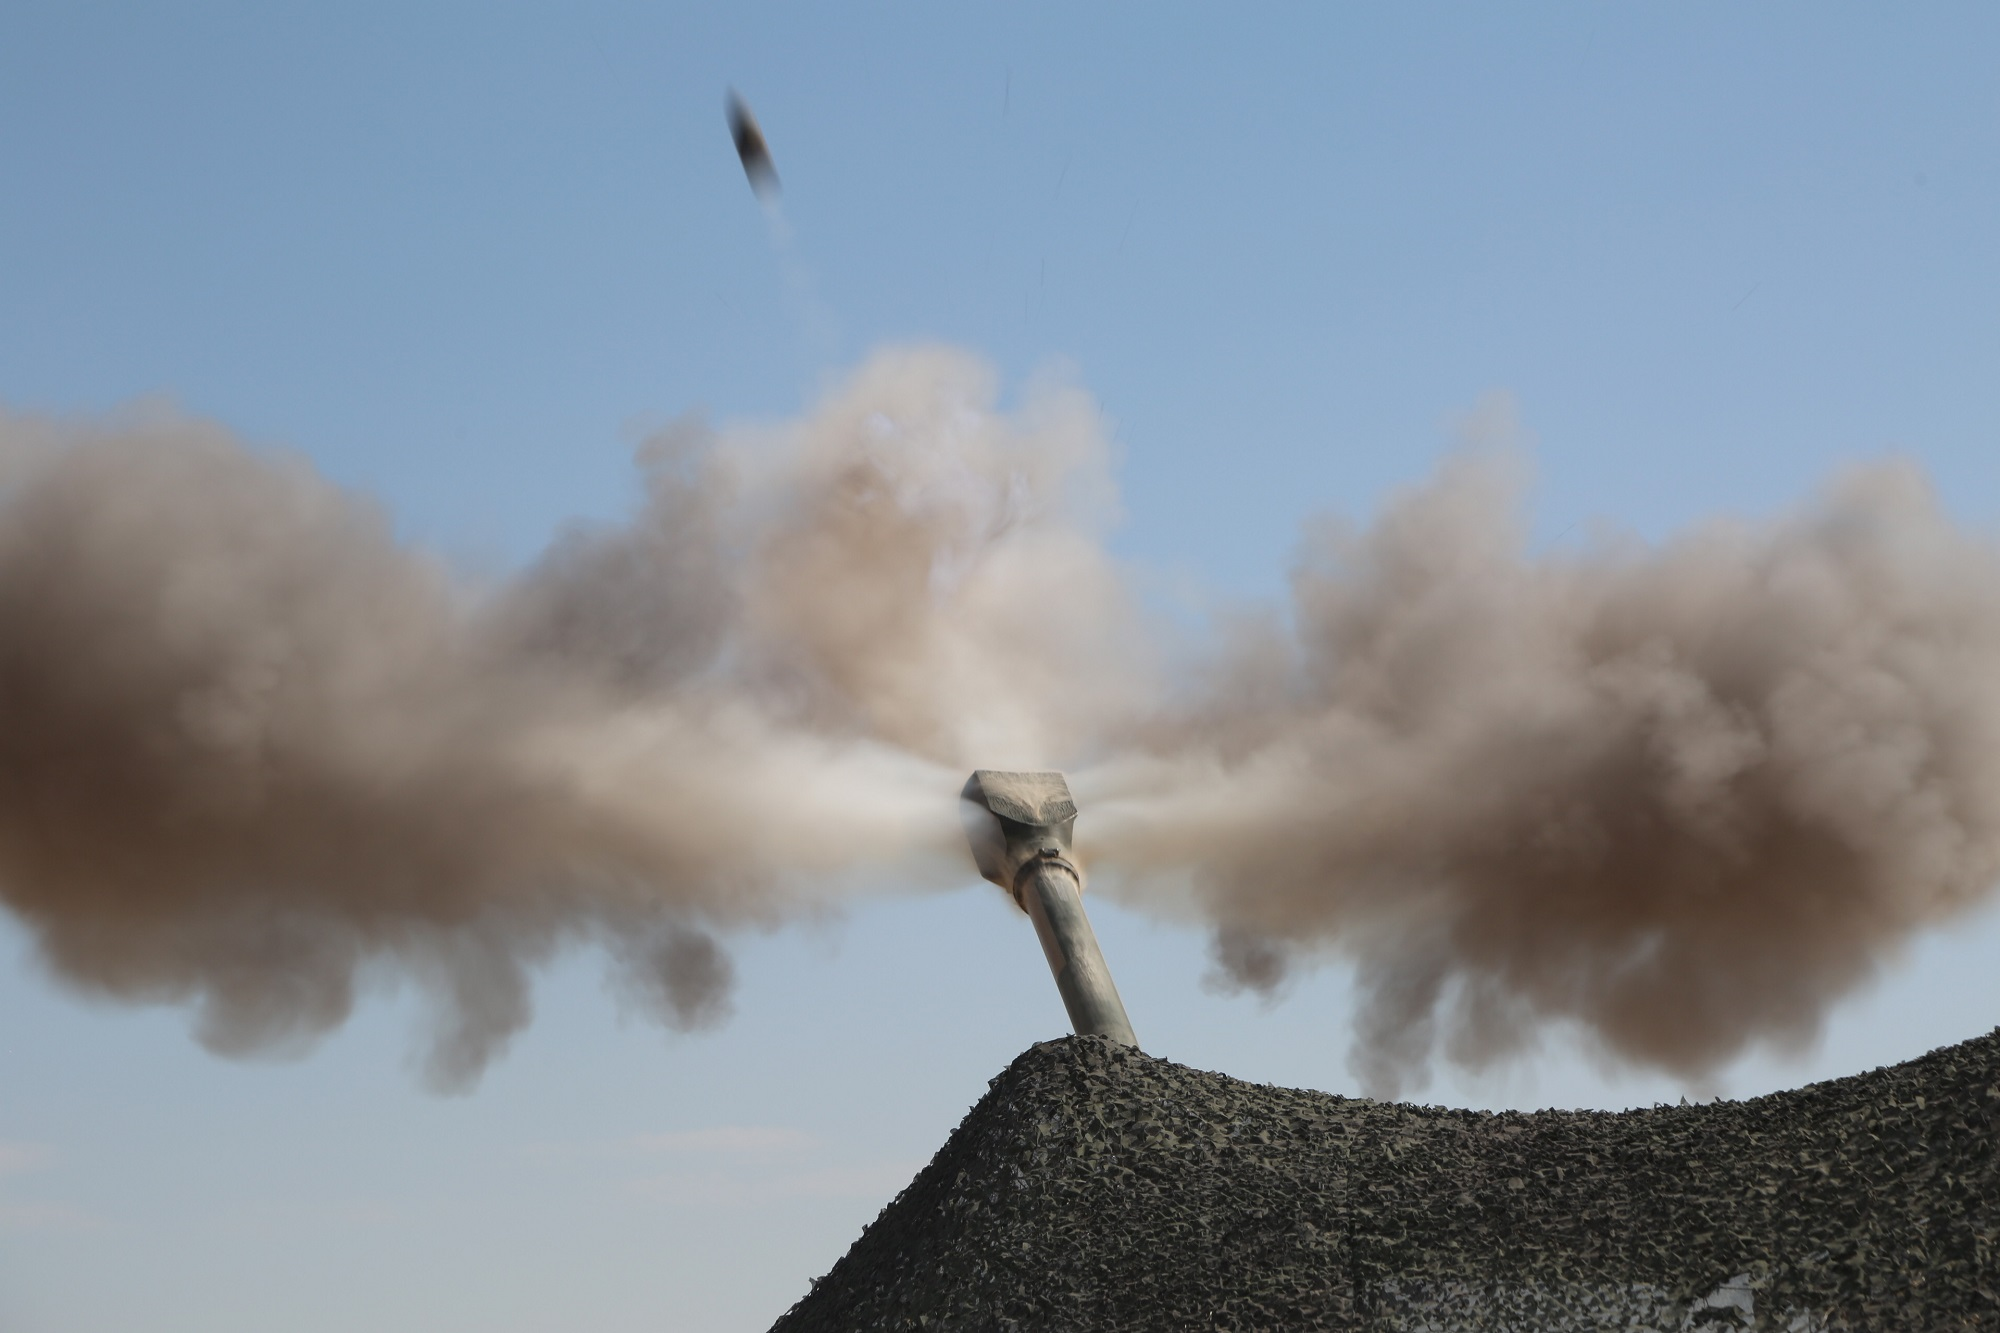 Army works to upgrade 155 mm lethality, range and accuracy